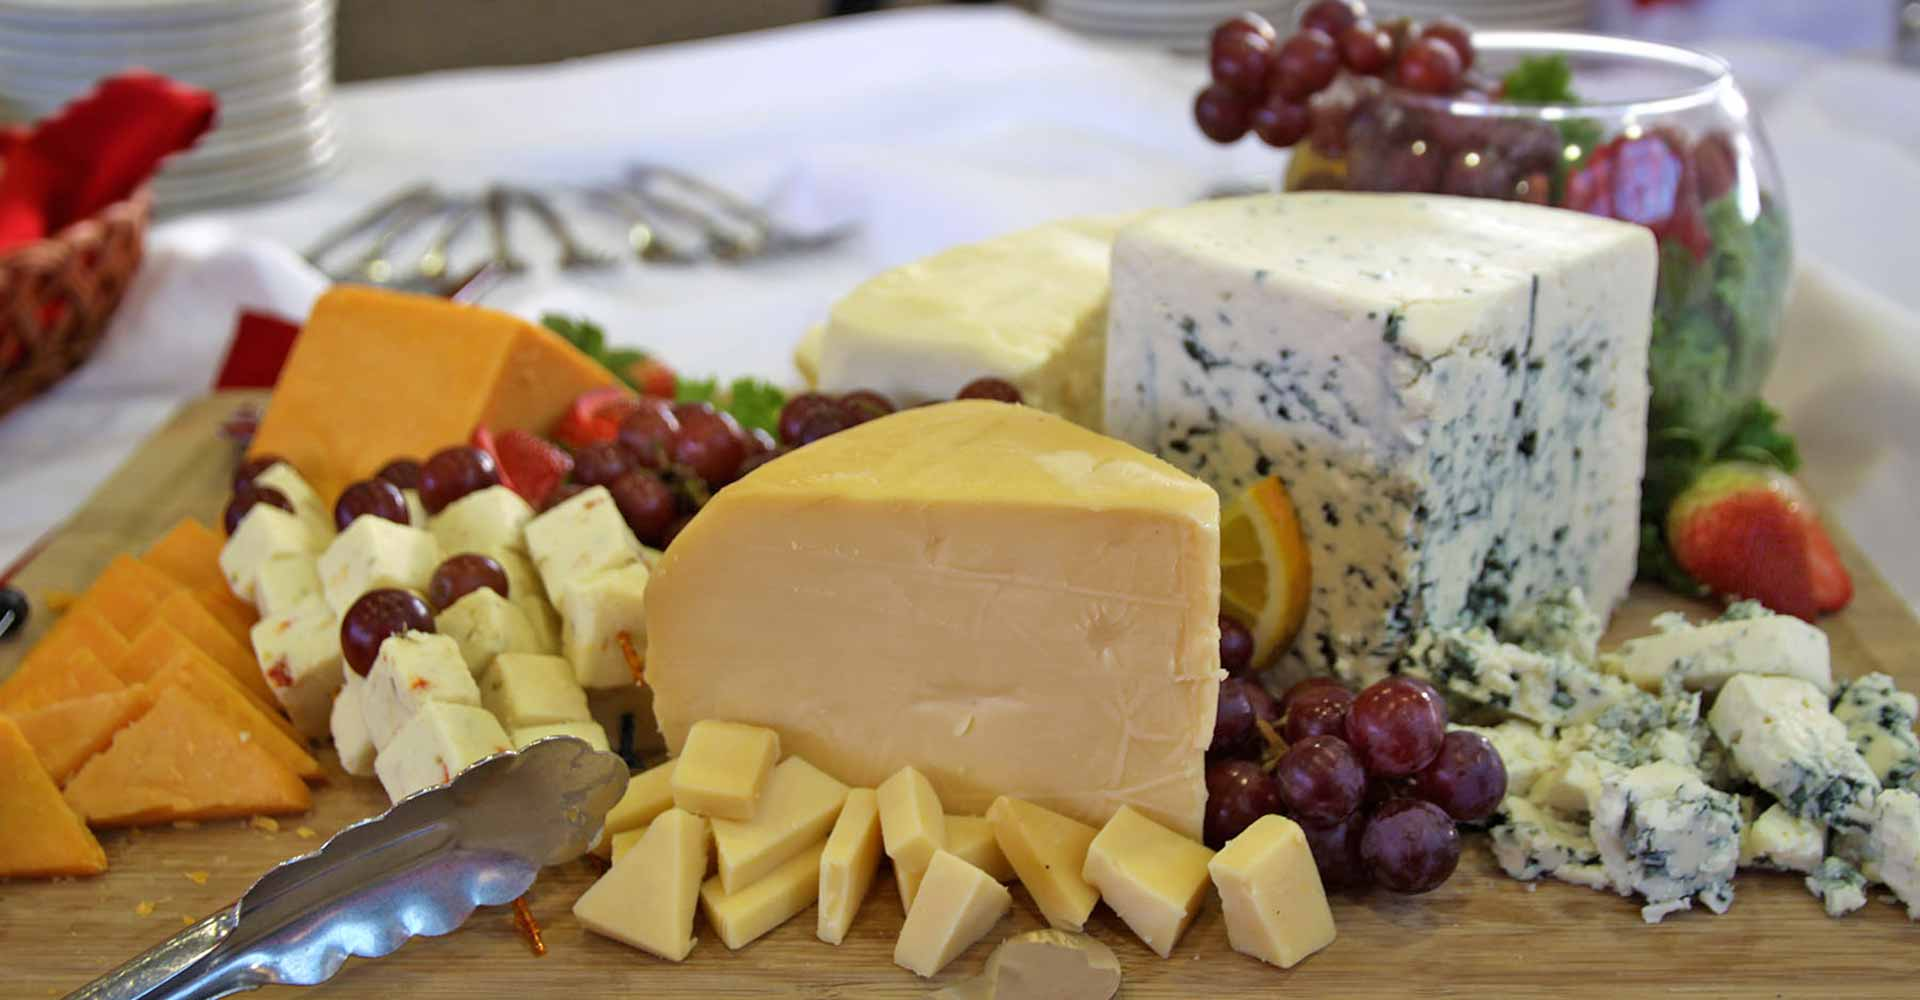 Guest Services Catering cheese platter